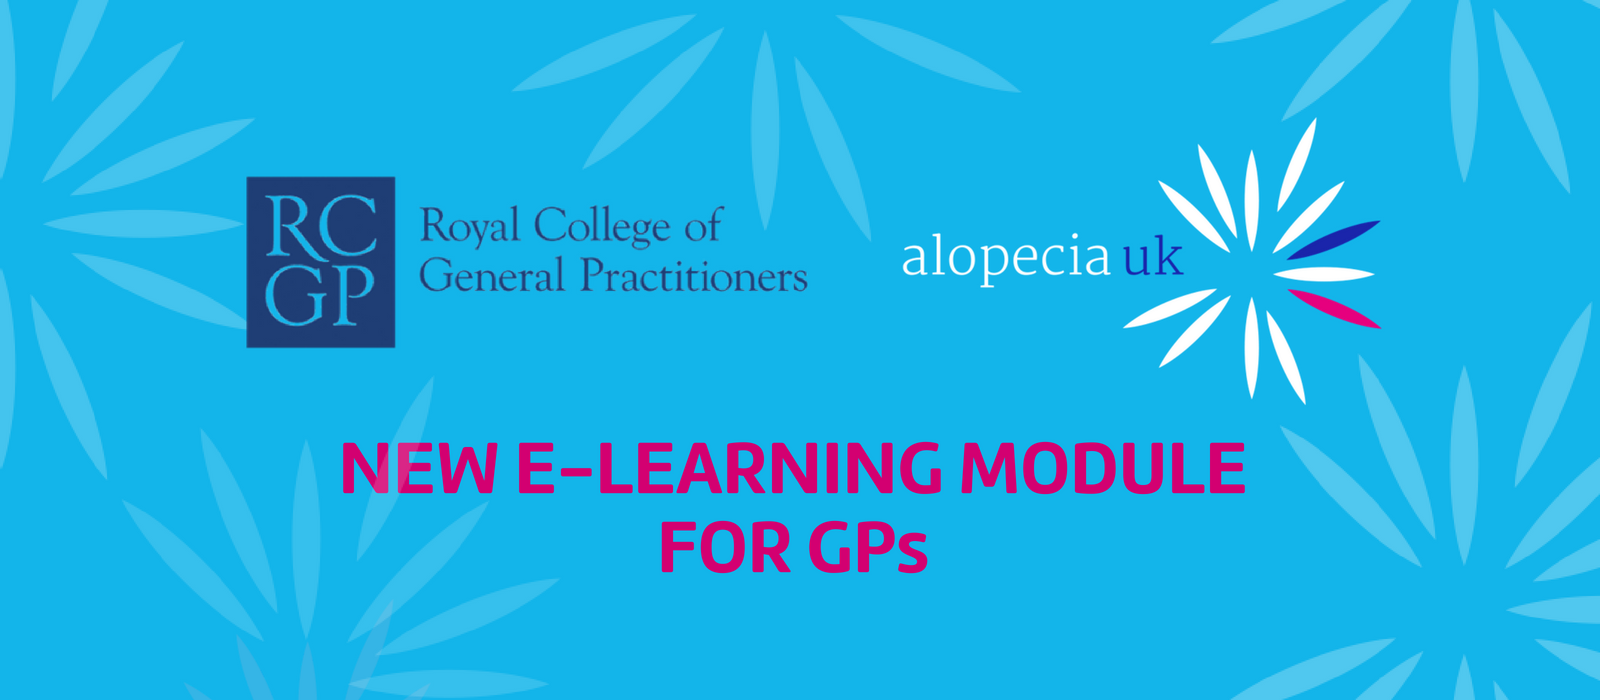 Alopecia E-Learning Module for GPs Launched!